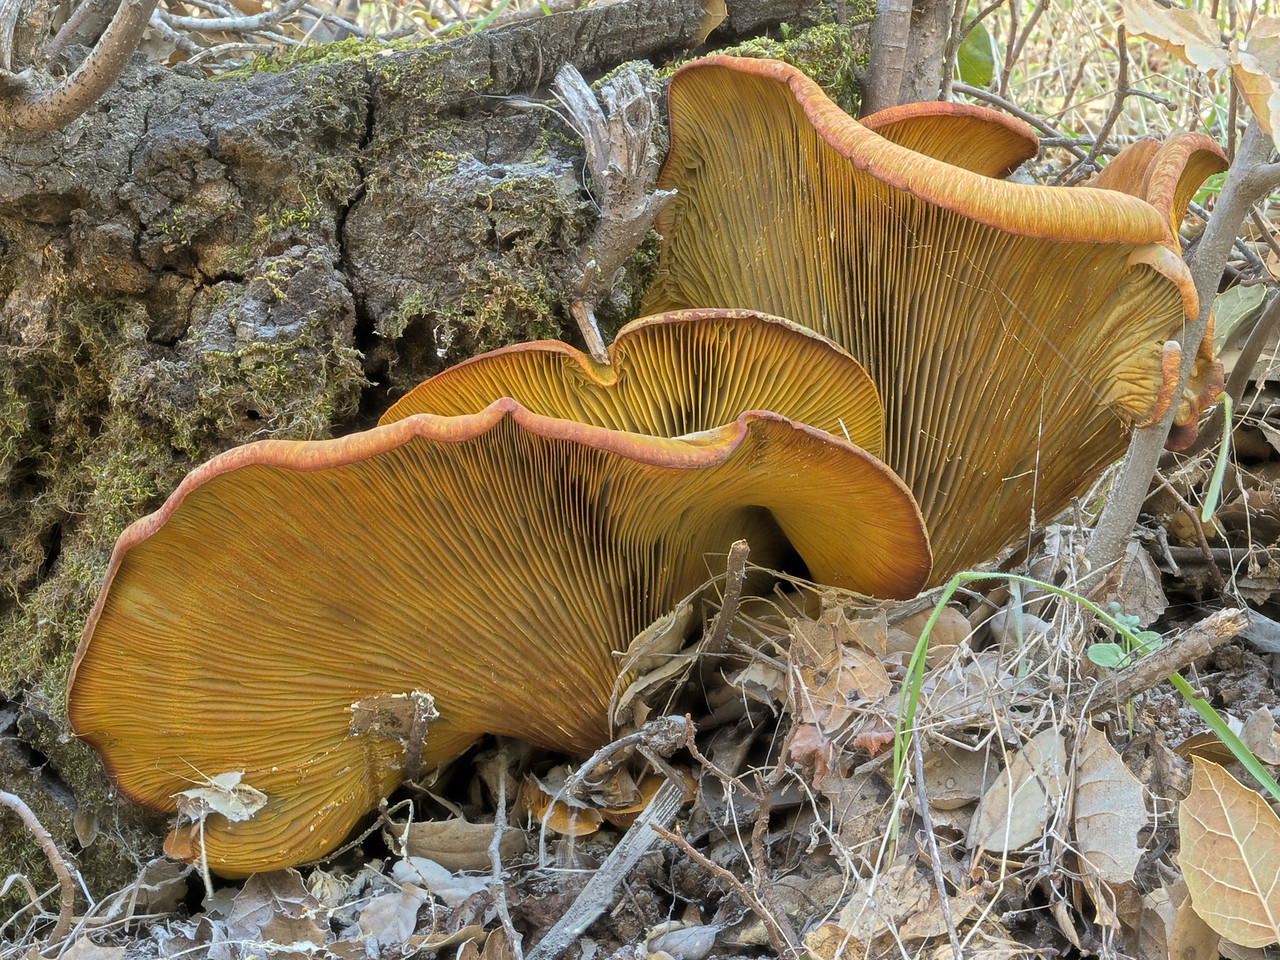 Omphalotus olivascens, the Jack O'Lantern mushroom